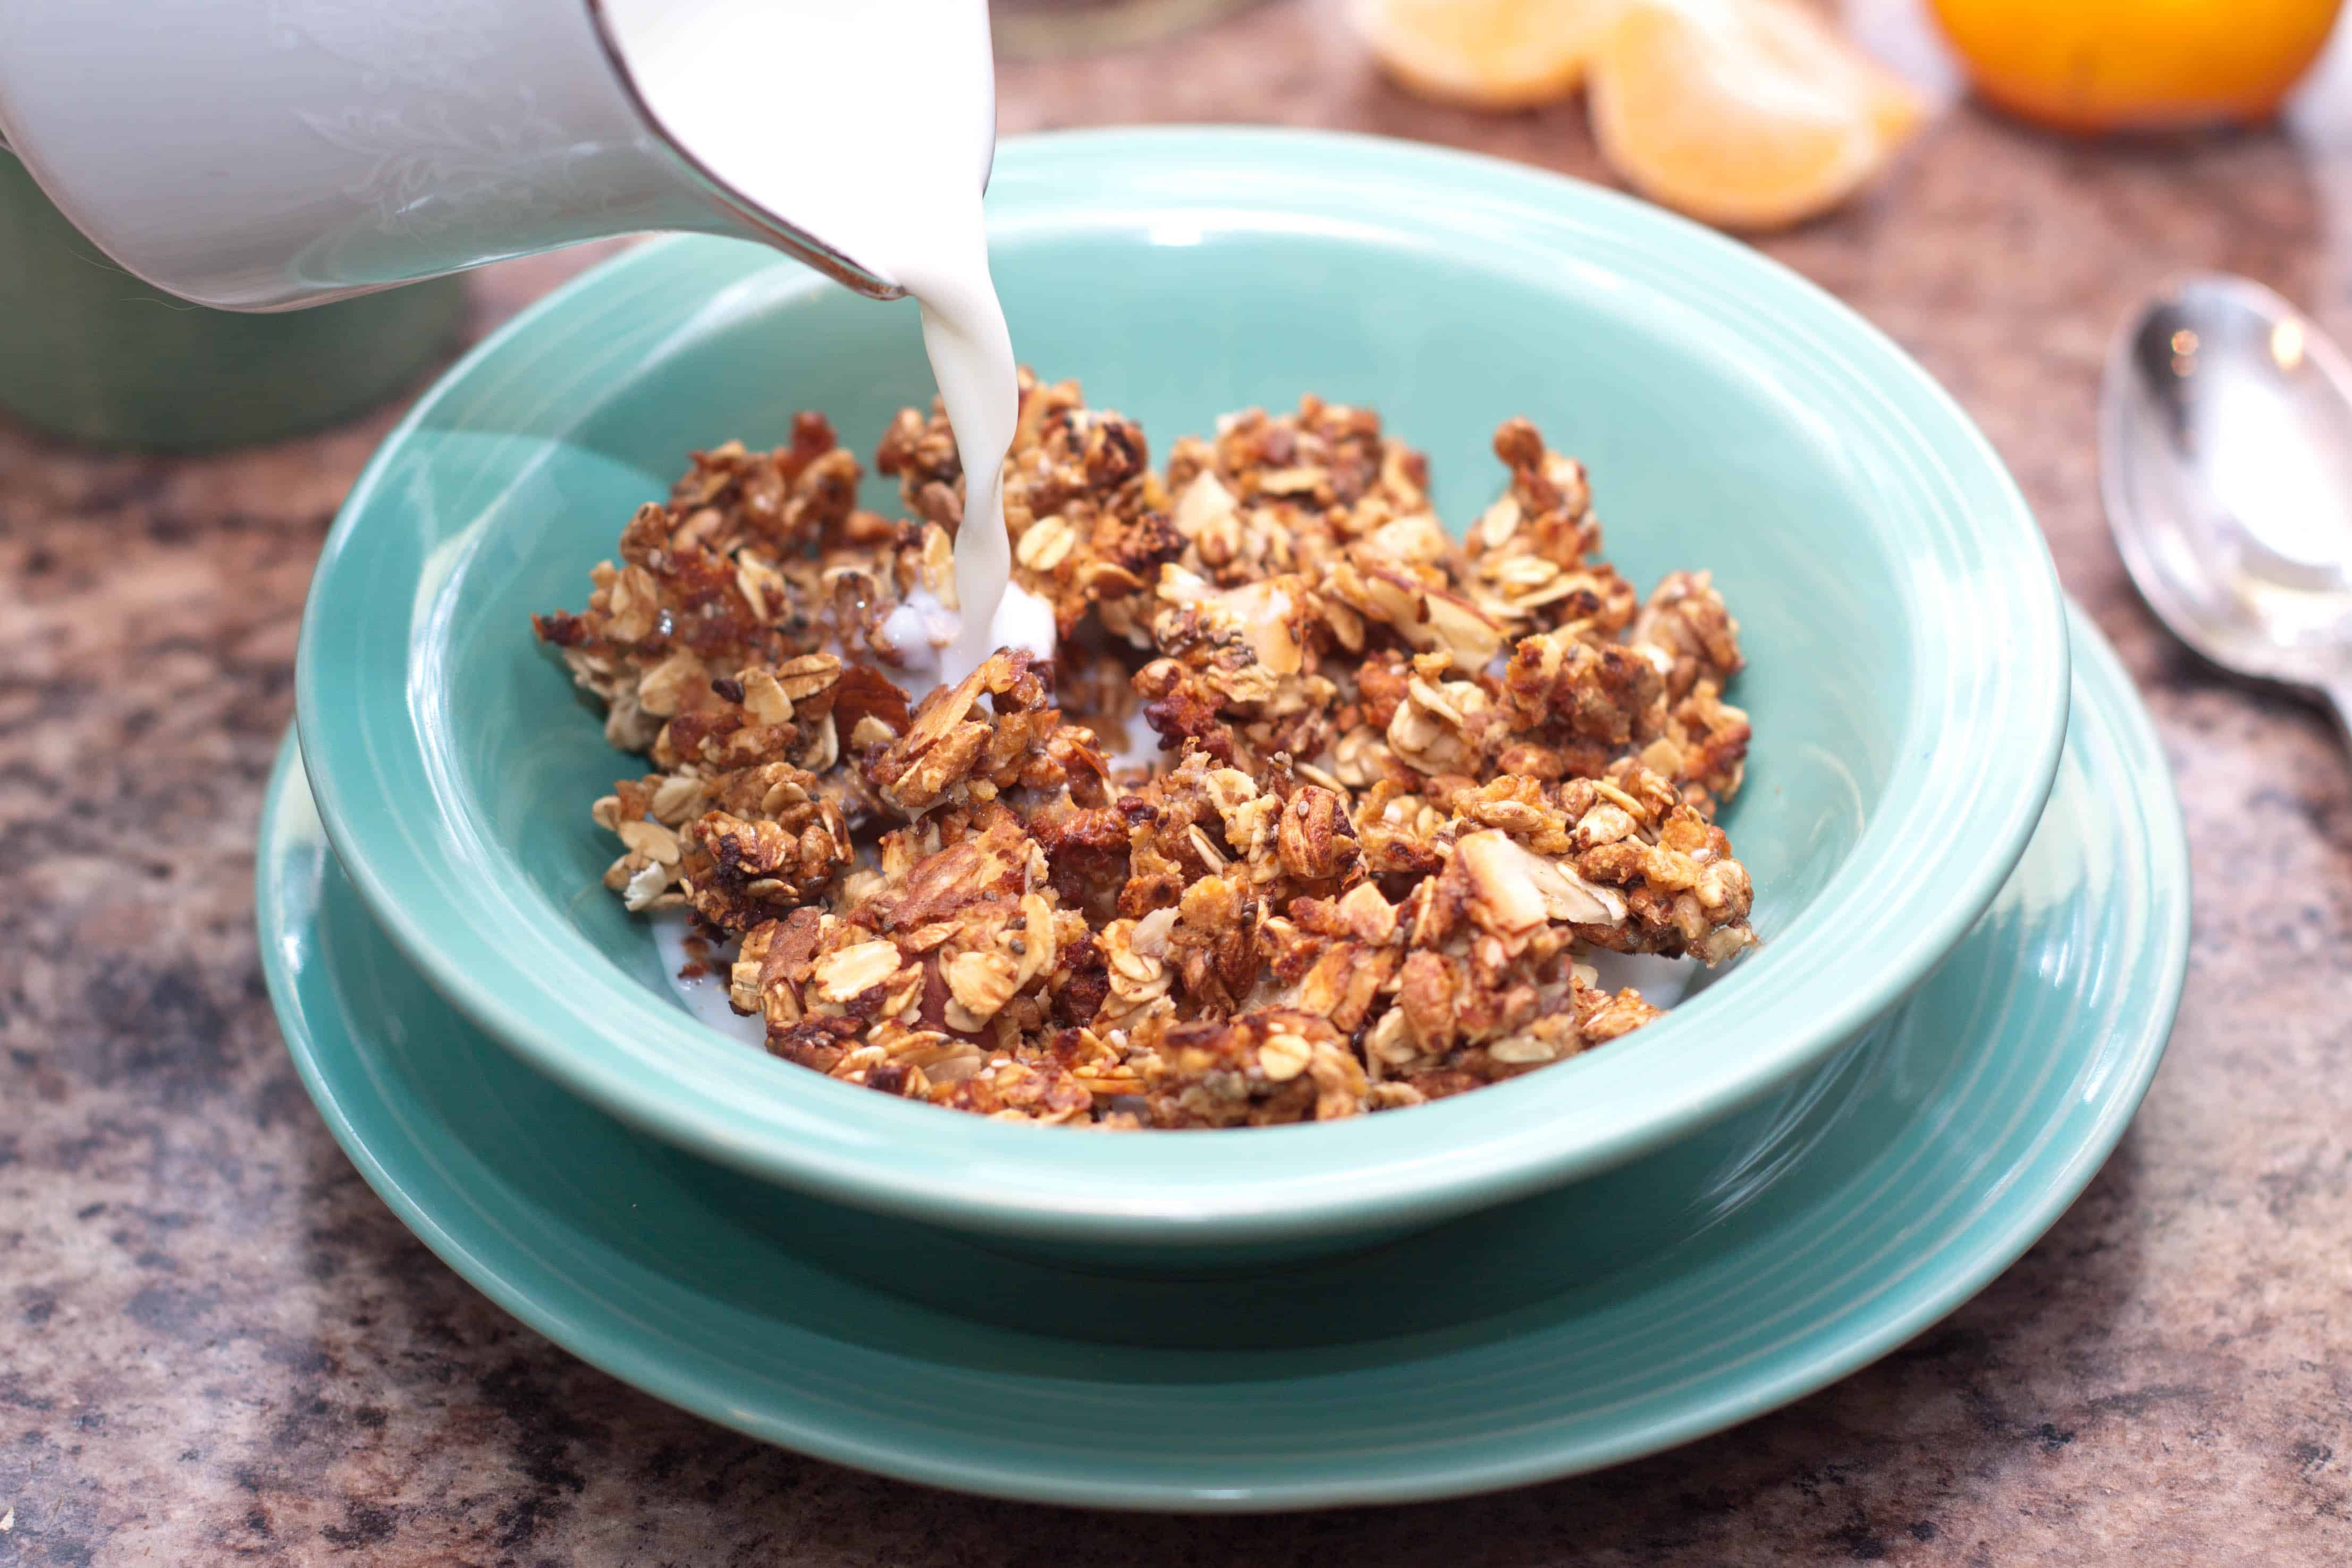 Copycat kashi go lean crunch cereal served from scratch love kashi cereals did you know that you can make your own copy cat kashi ccuart Choice Image